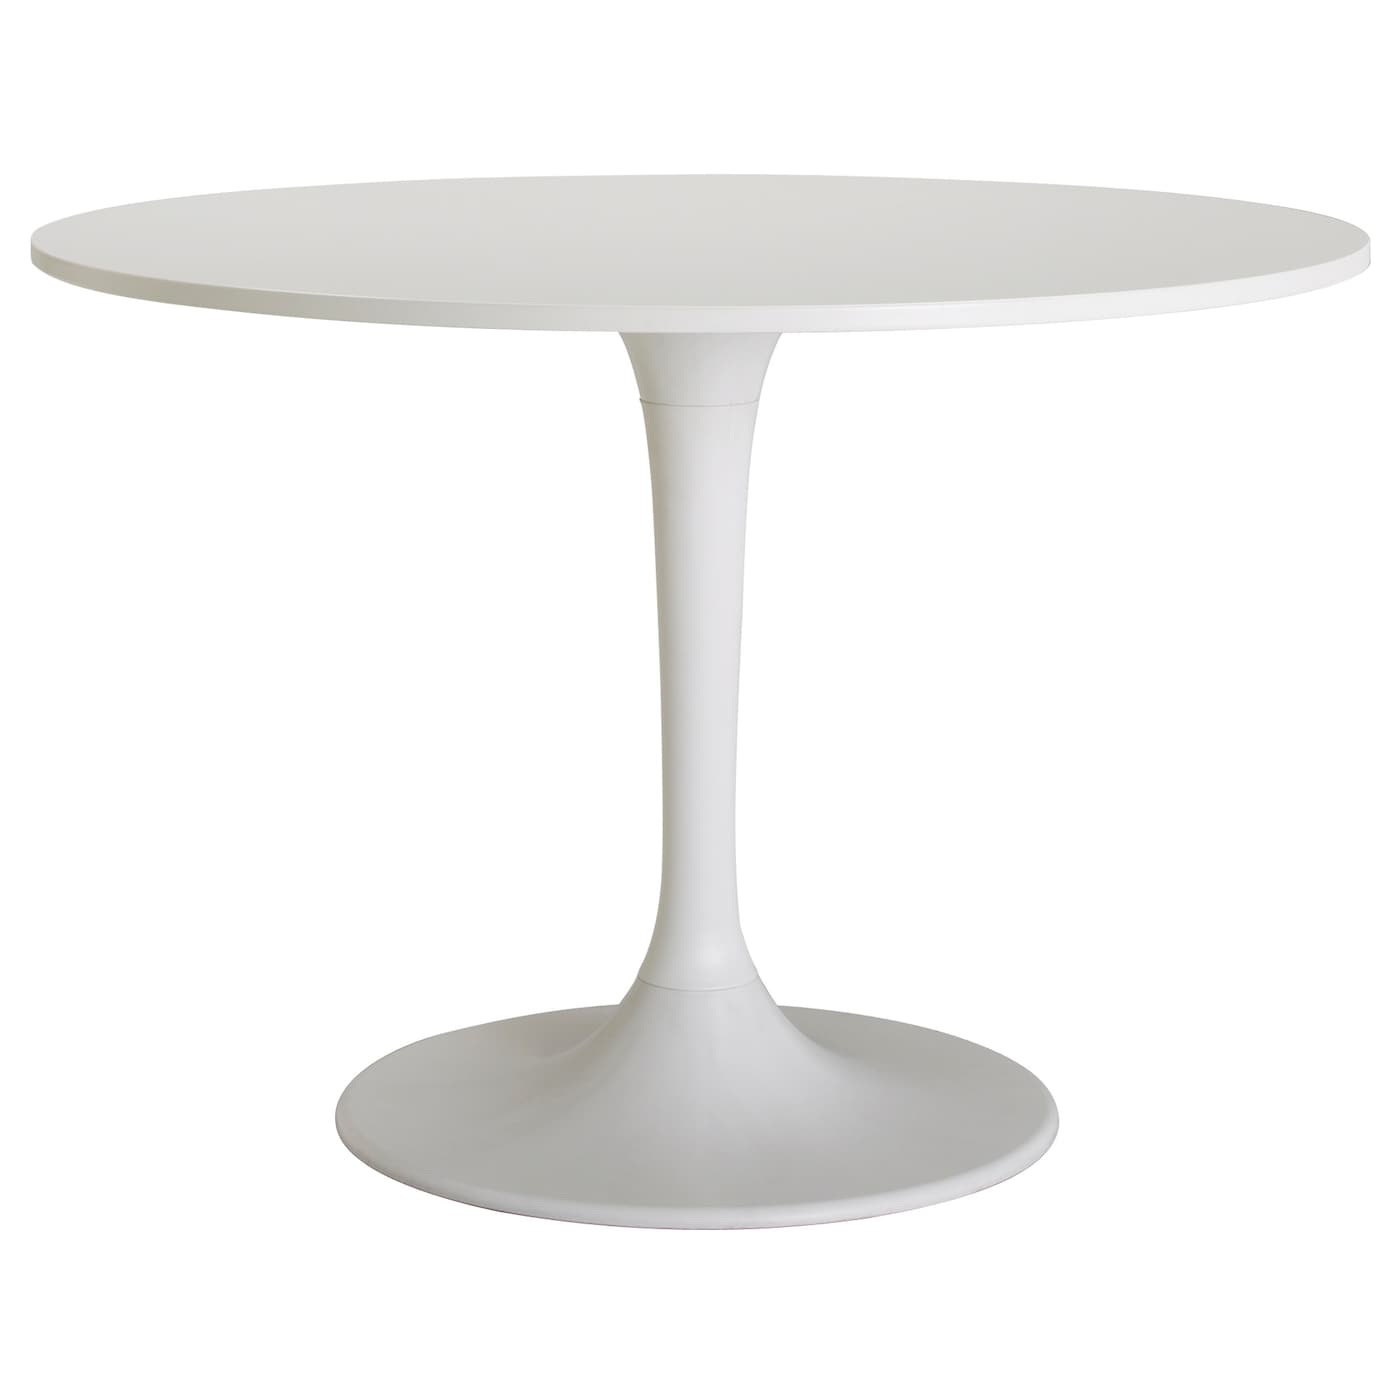 Docksta table white 105 cm ikea - Table ronde 110 cm ...